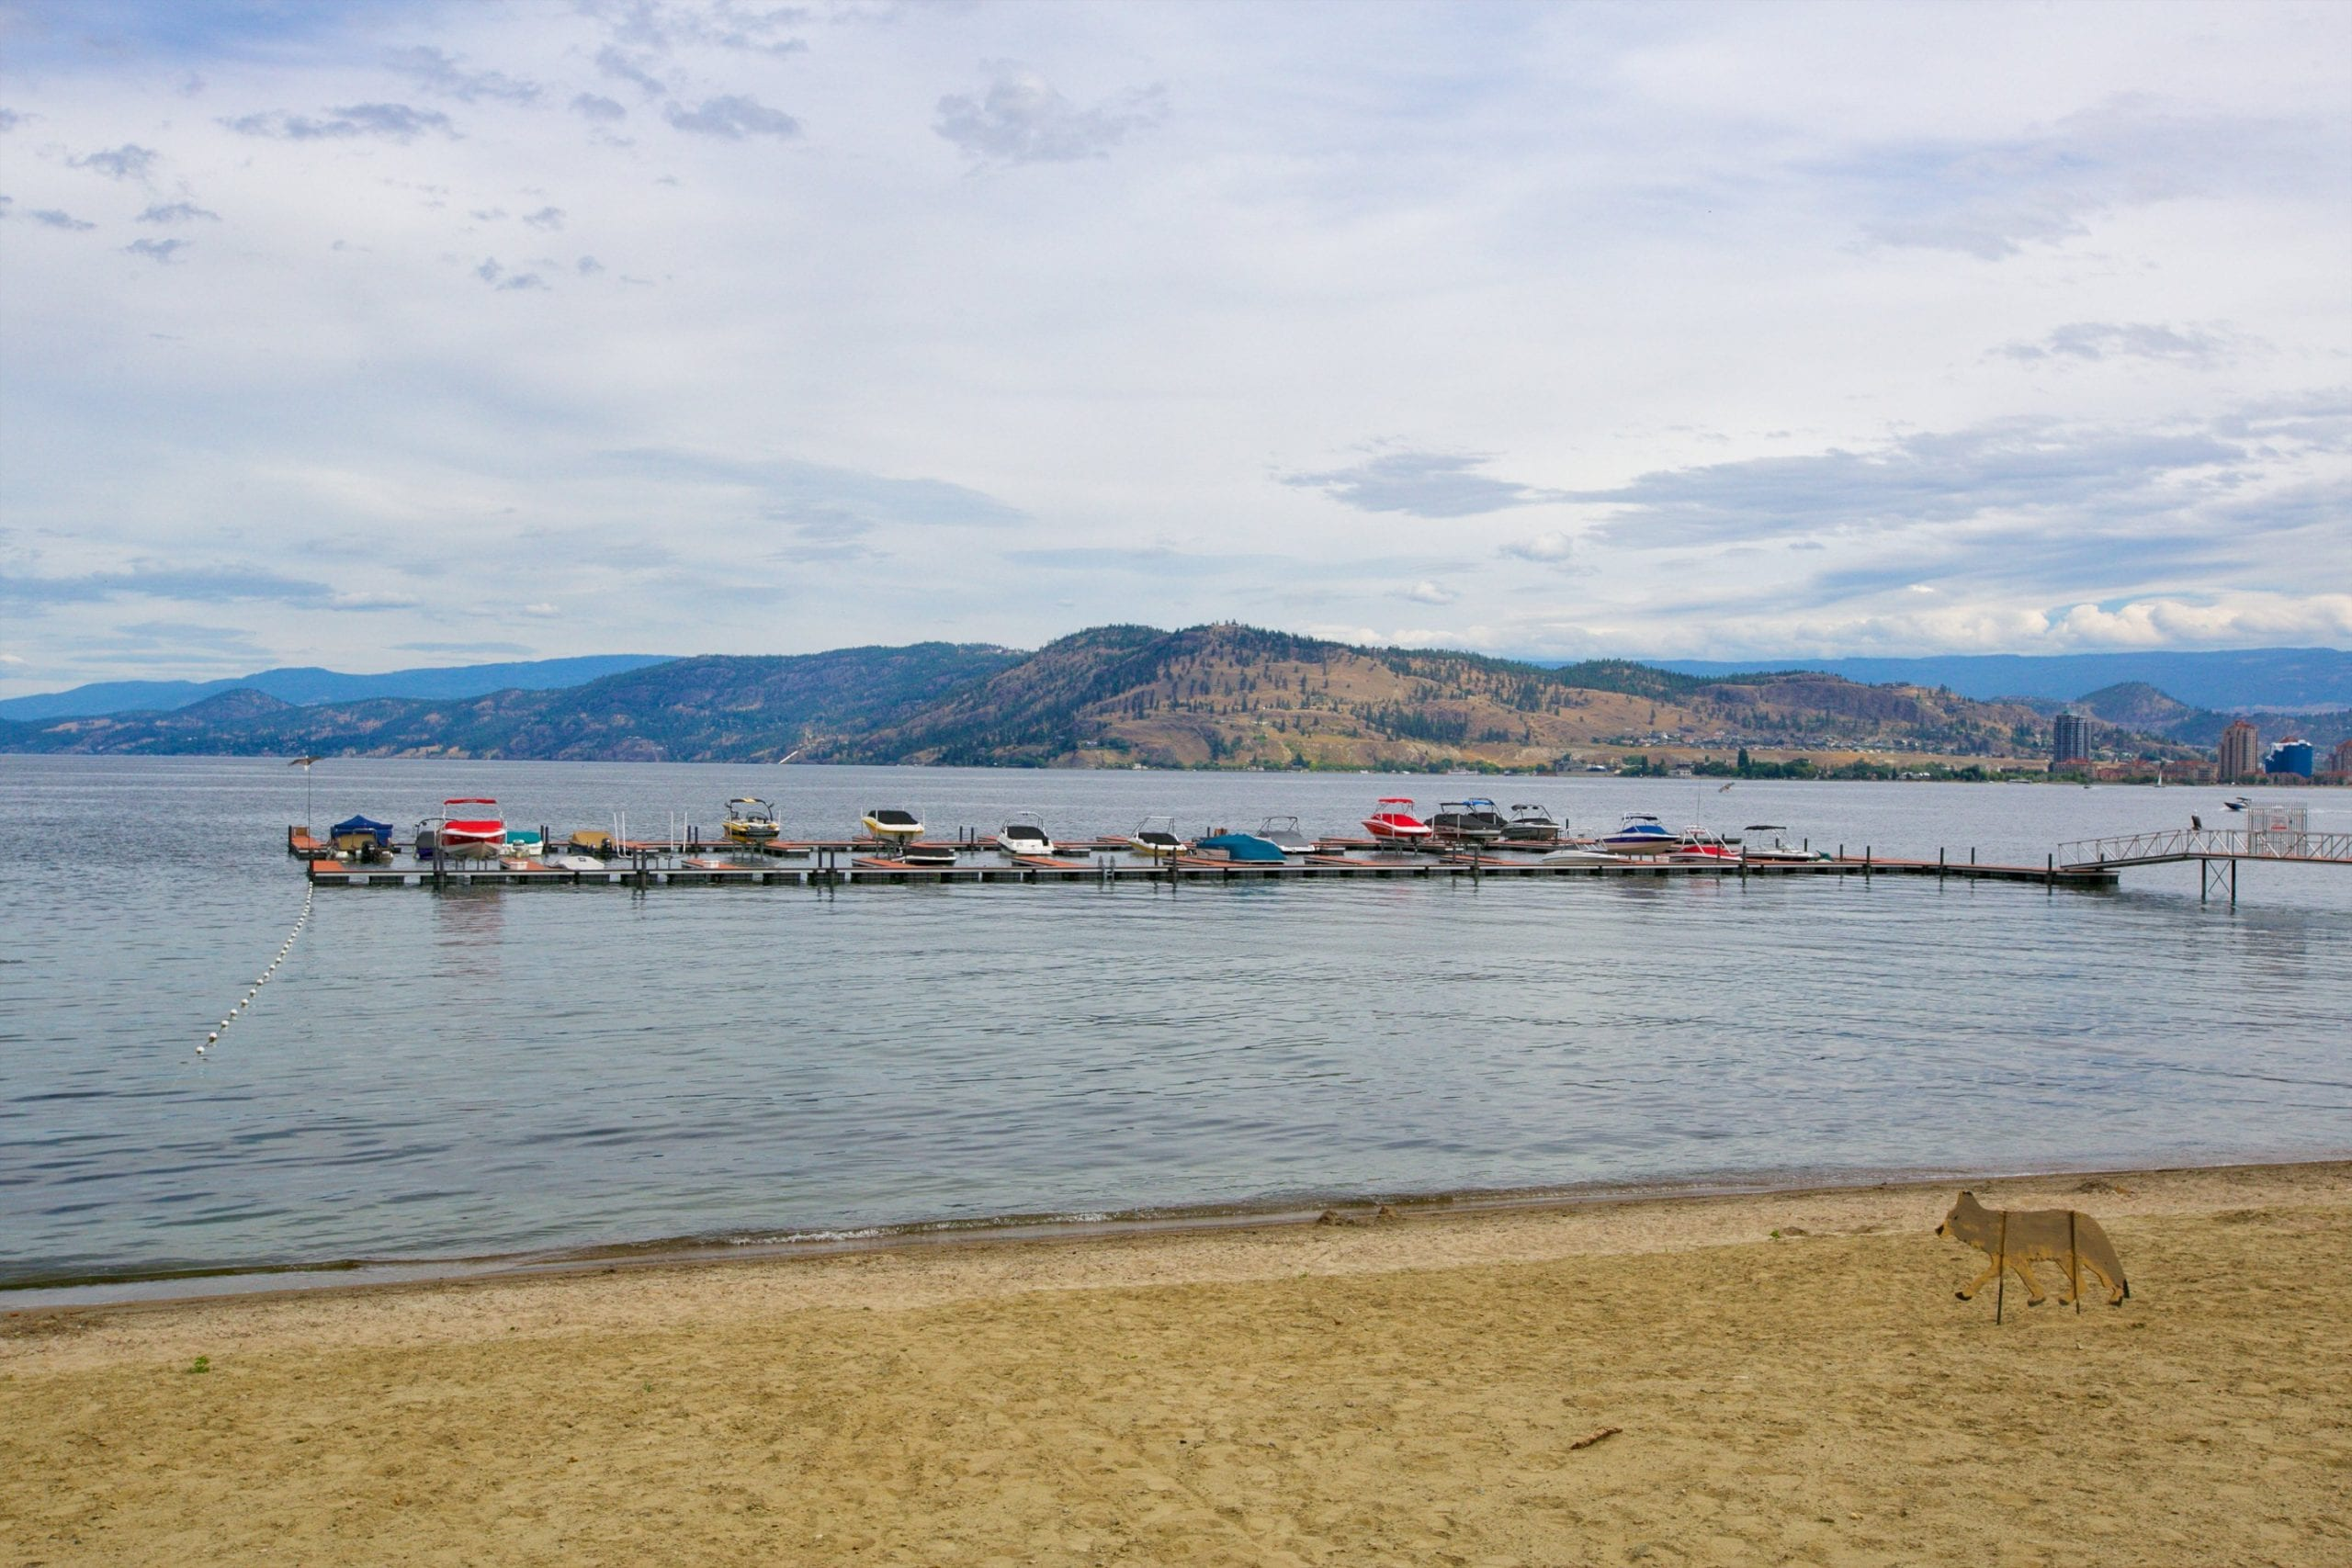 beach shot of west harbour marina with boats docked on the okanagan lake in full view of the mountains